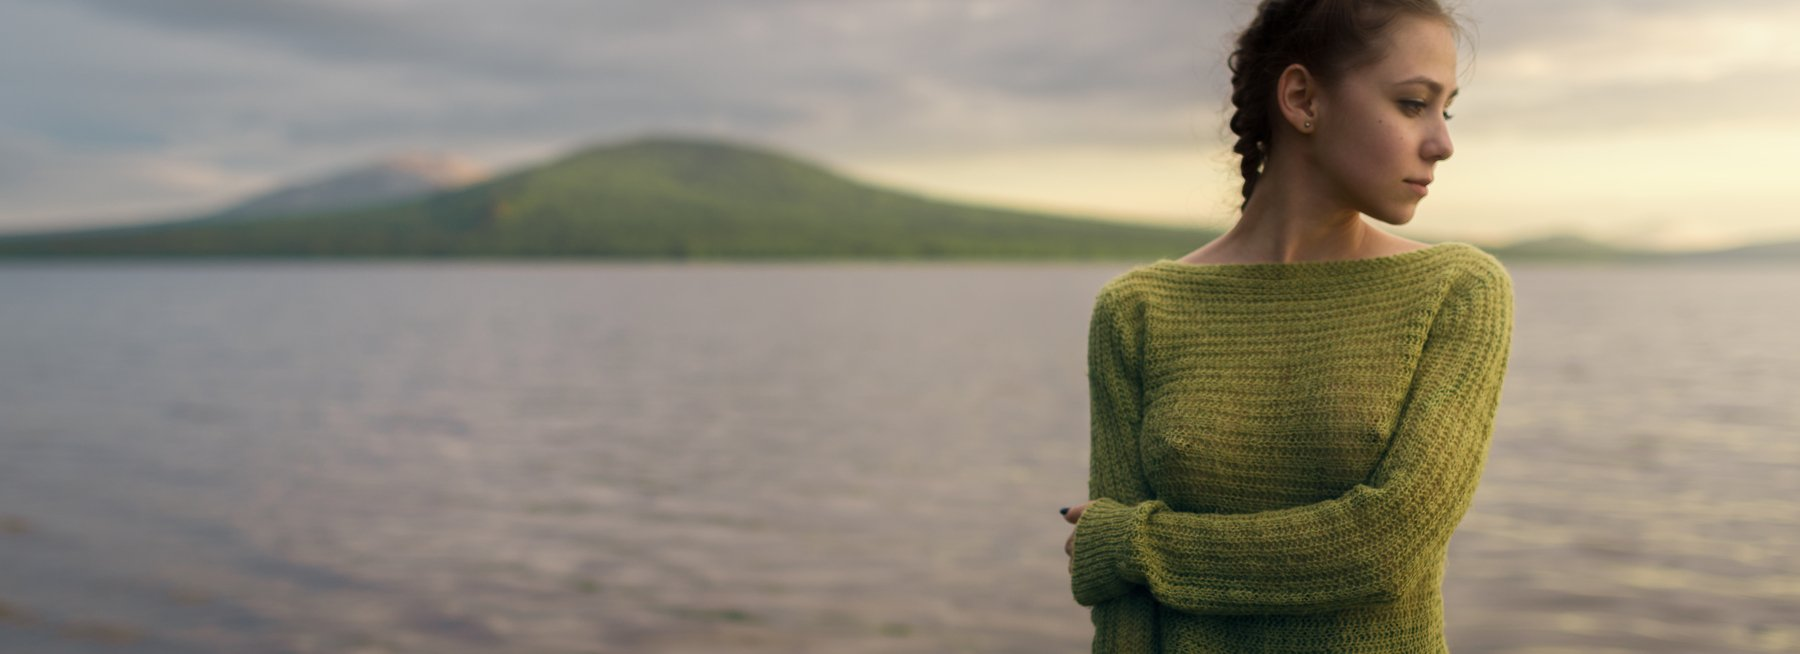 girl, portrait, nature, lake, ural, zuratkul, green, color, nice, mountains, mountain, russia, , Роман Филиппов